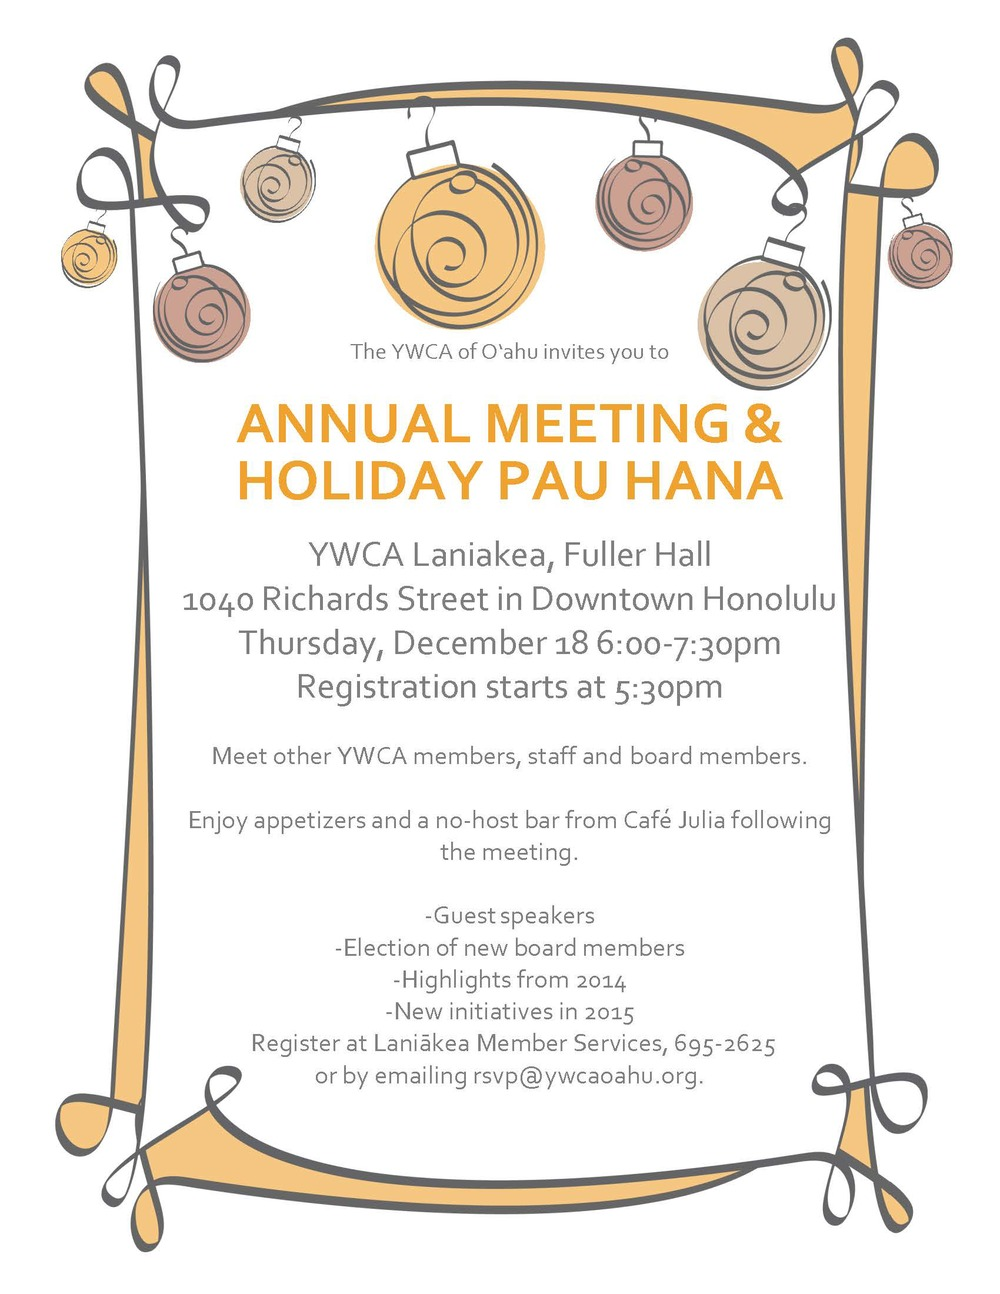 annual meeting flyer 2014.jpg